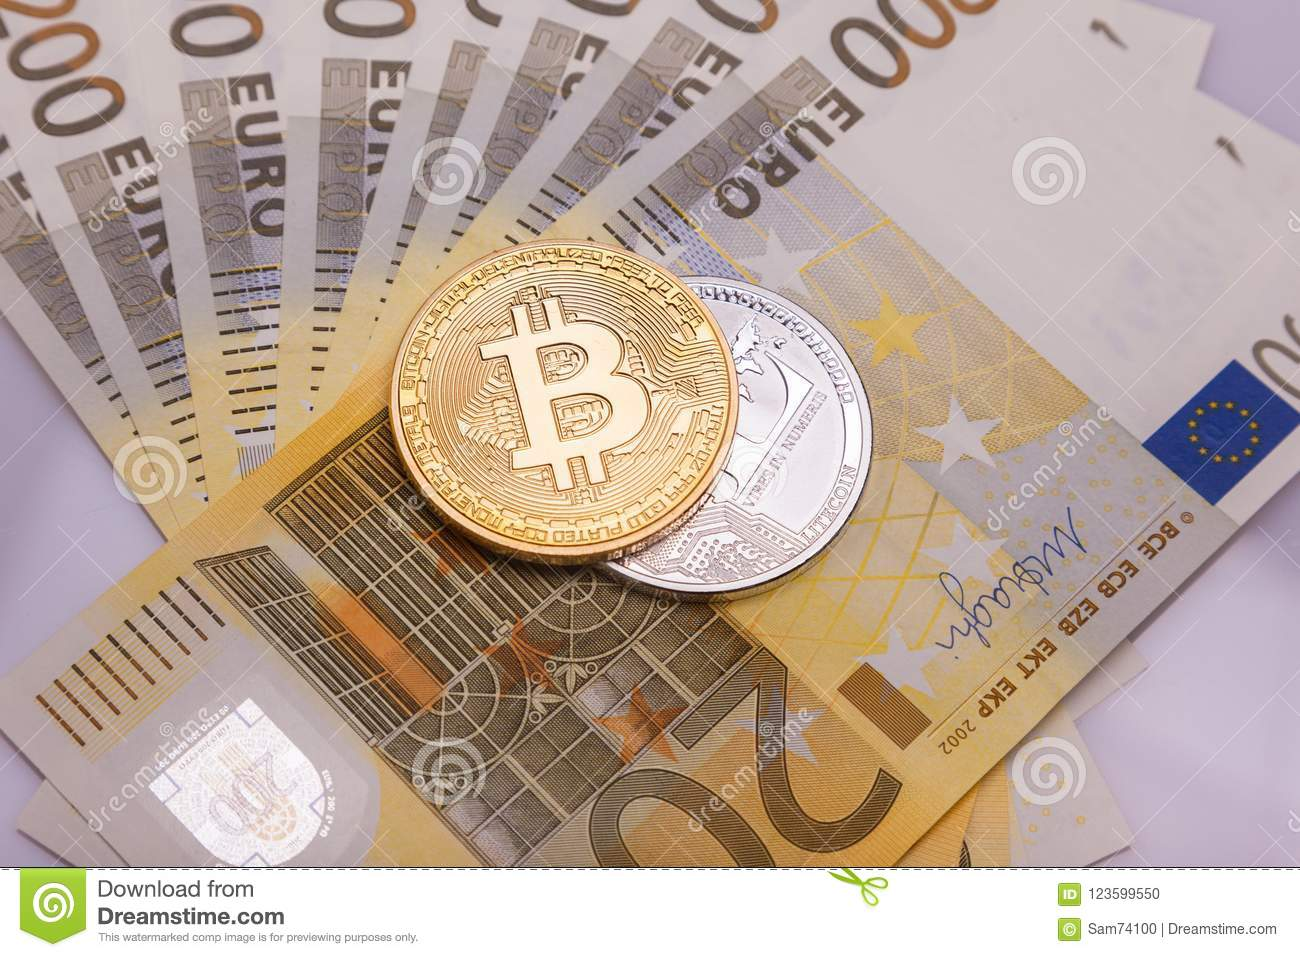 Bank coin crypto currency value nfl spread betting explained